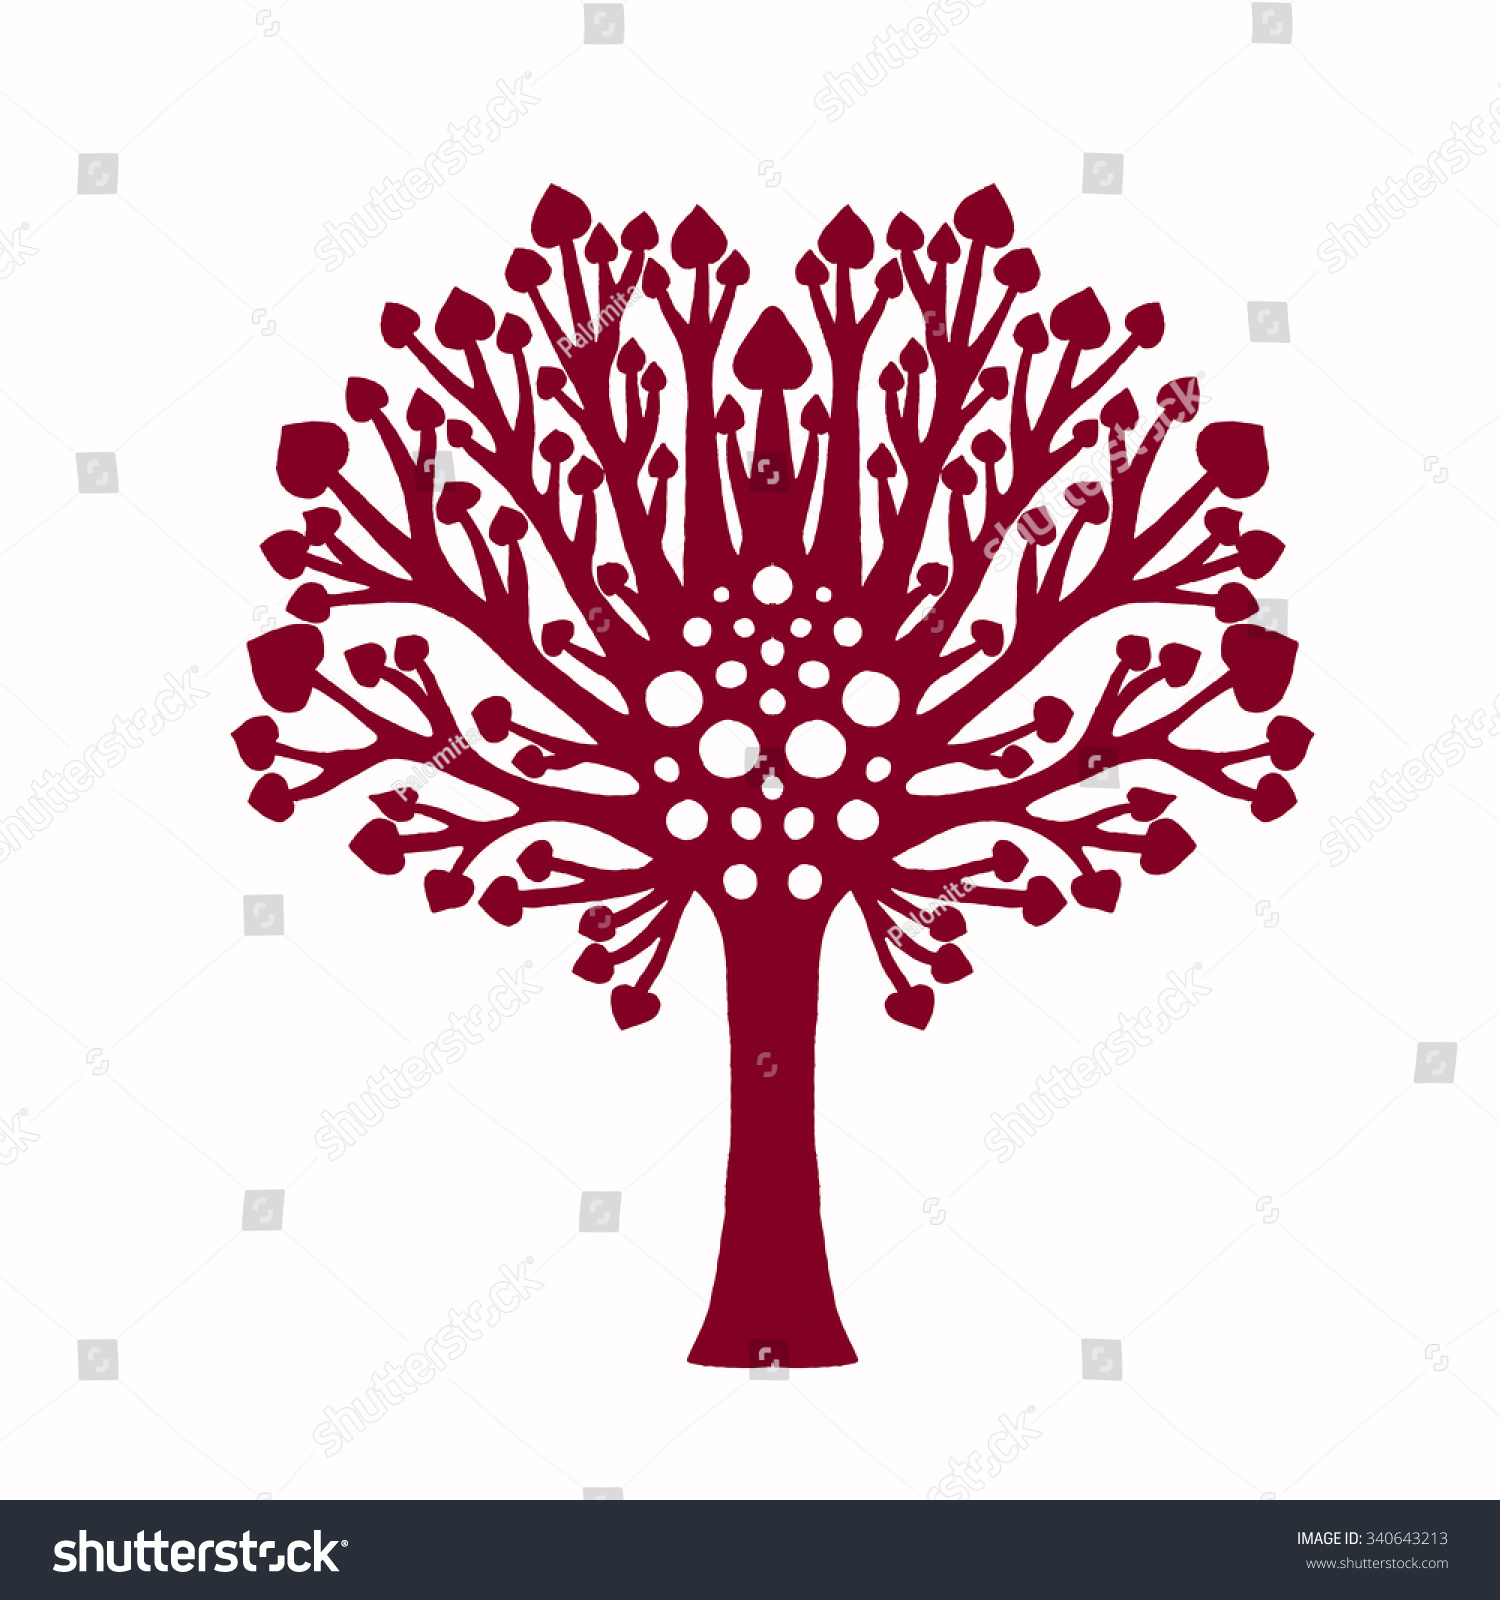 Tree Cutout Template. Mm Metal Steel Embossing Template Pine Tree ...